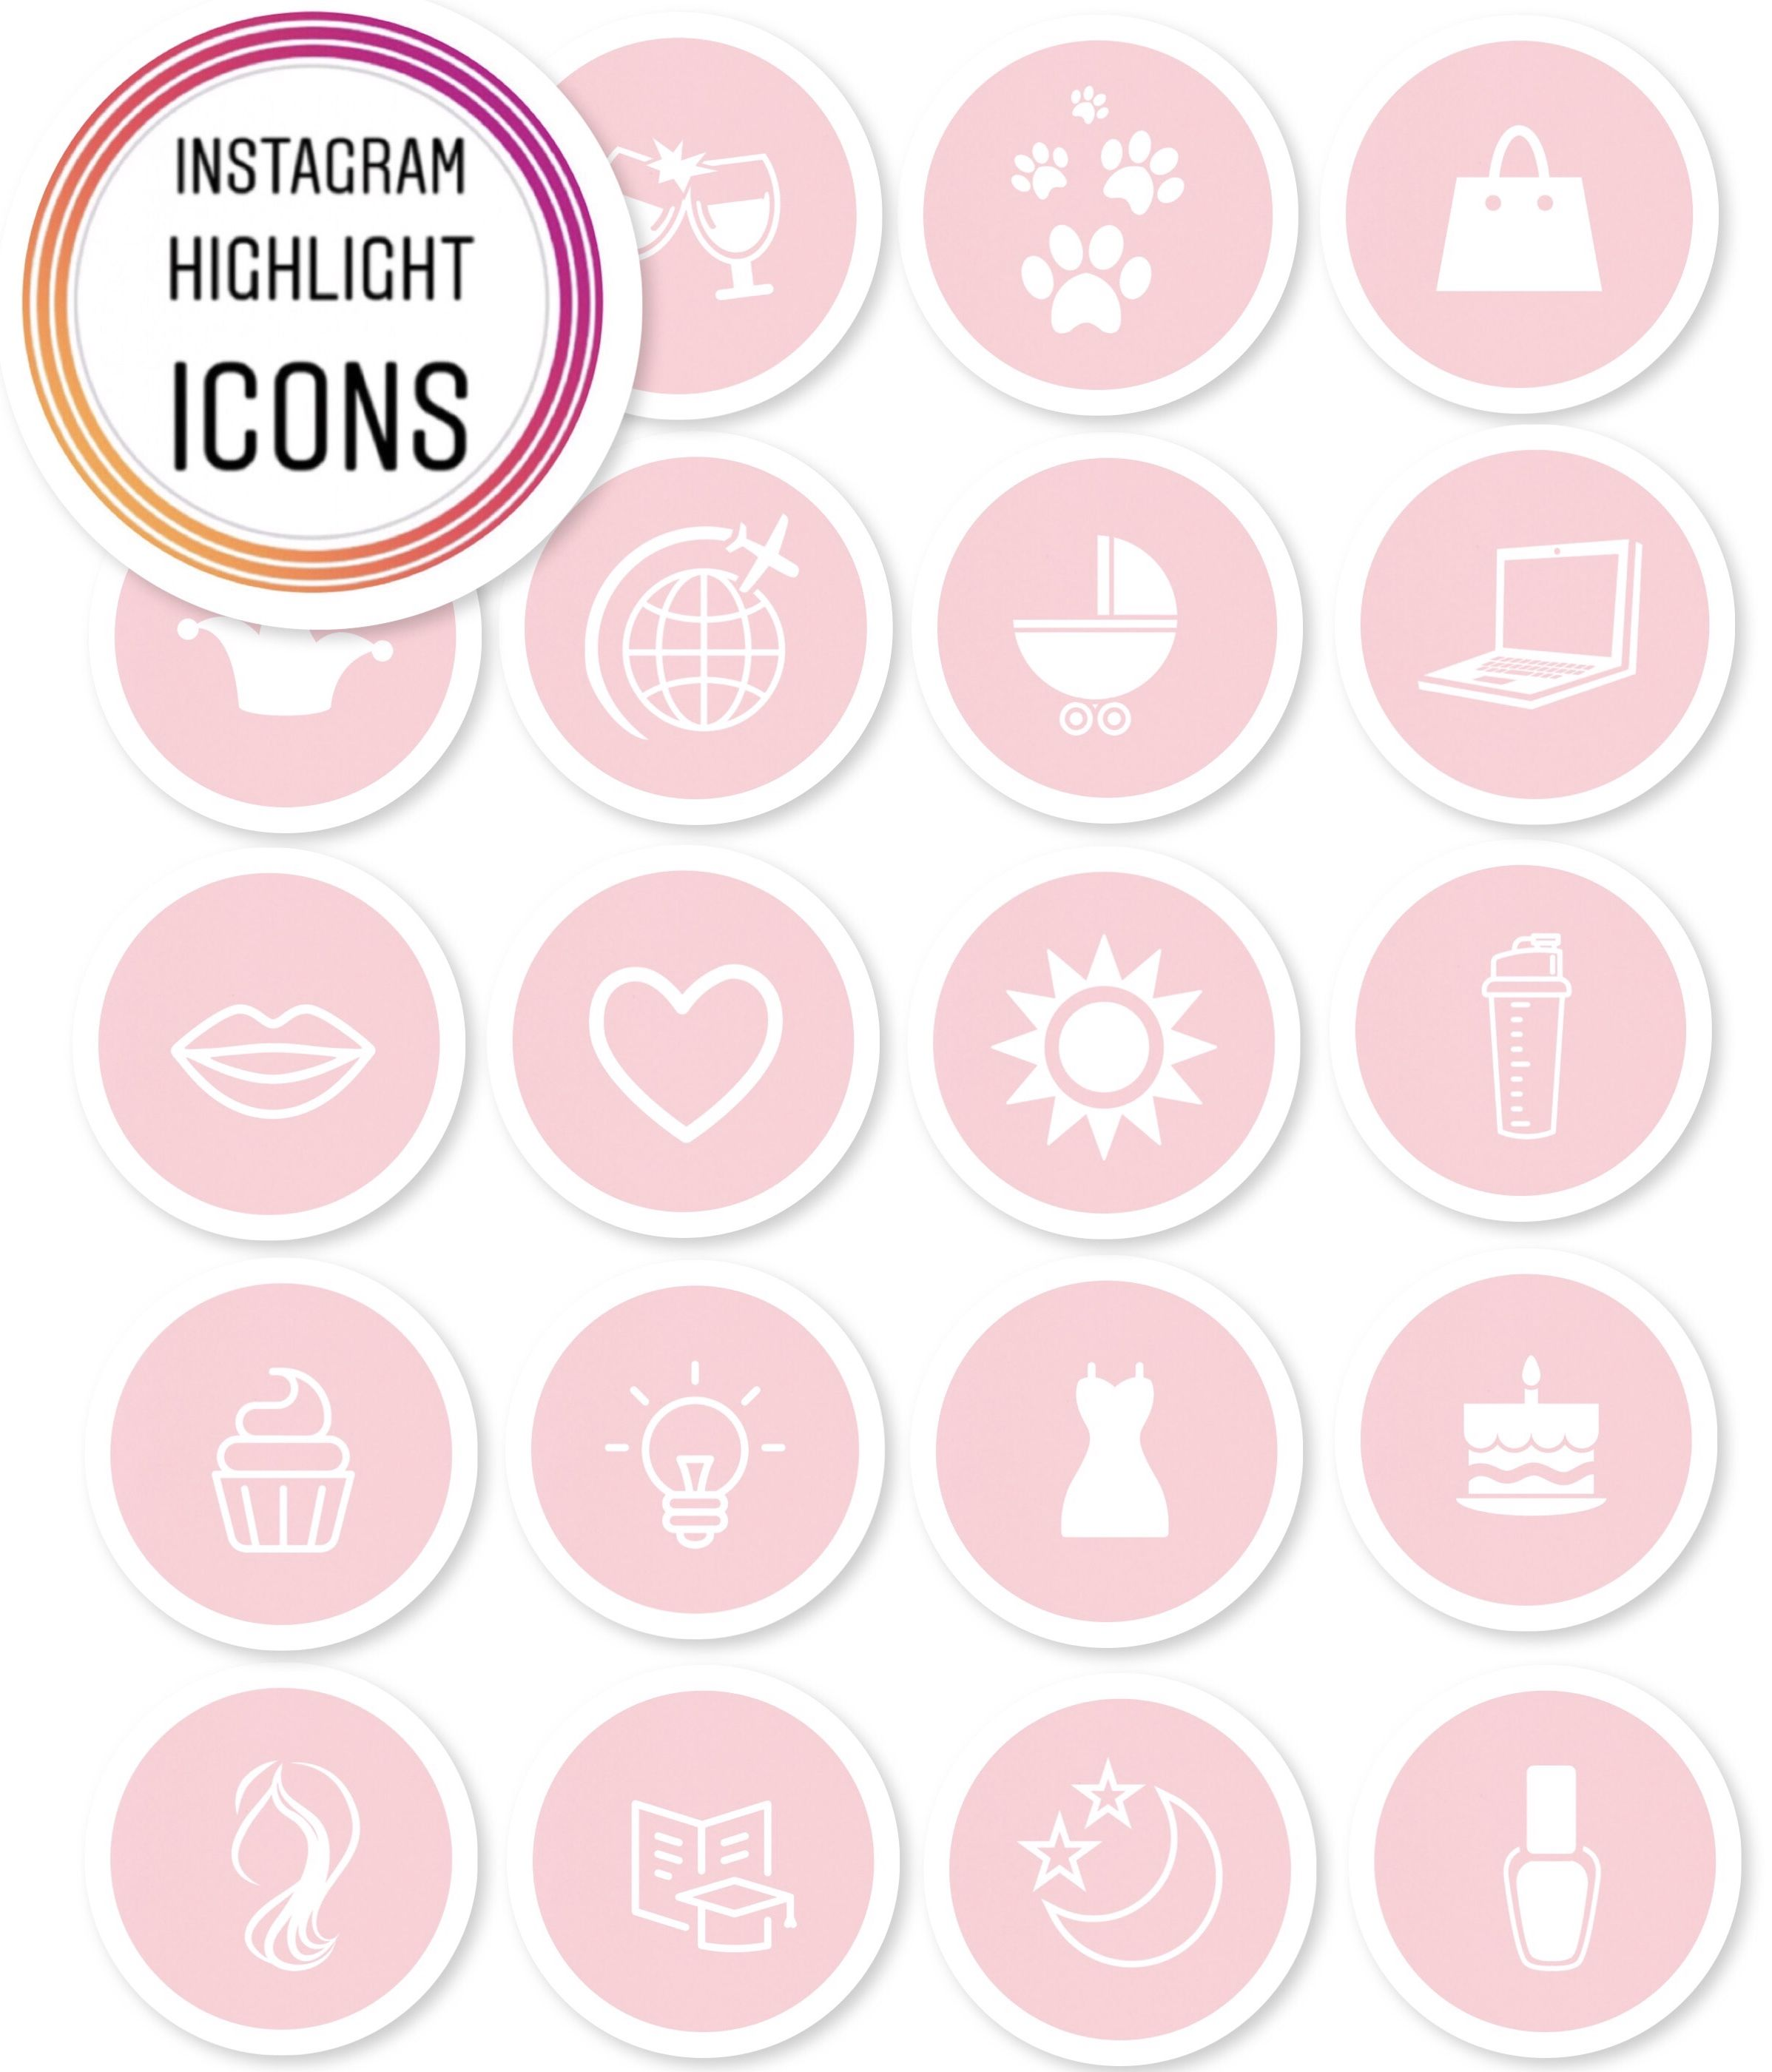 Instagram Story Highlight Icon Images Set of 19